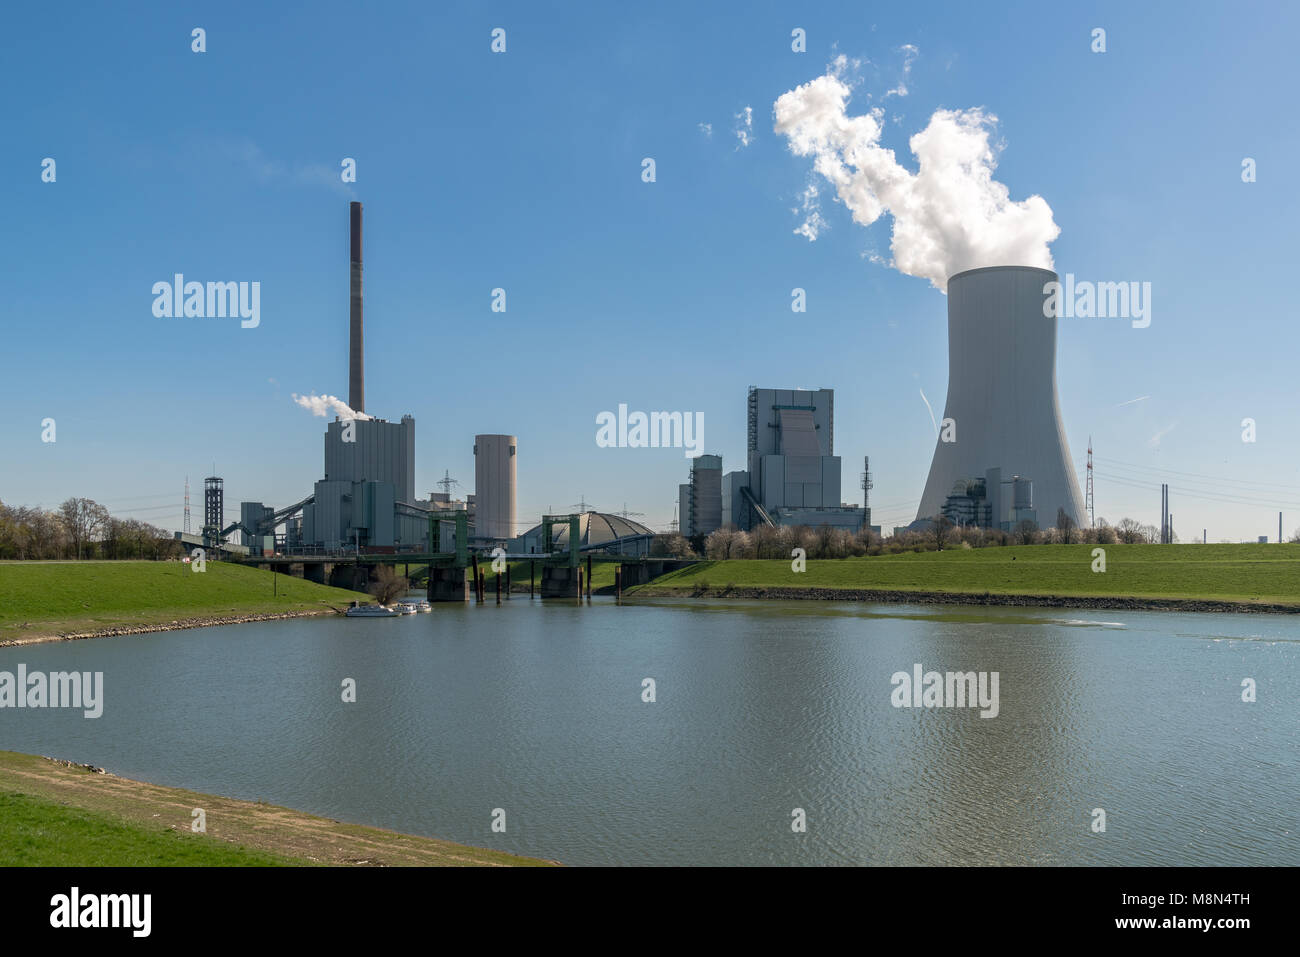 Duisburg, North Rhine-Westphalia, Germany - March 27, 2017: Power Station Walsum with the old lift bridge - Stock Image